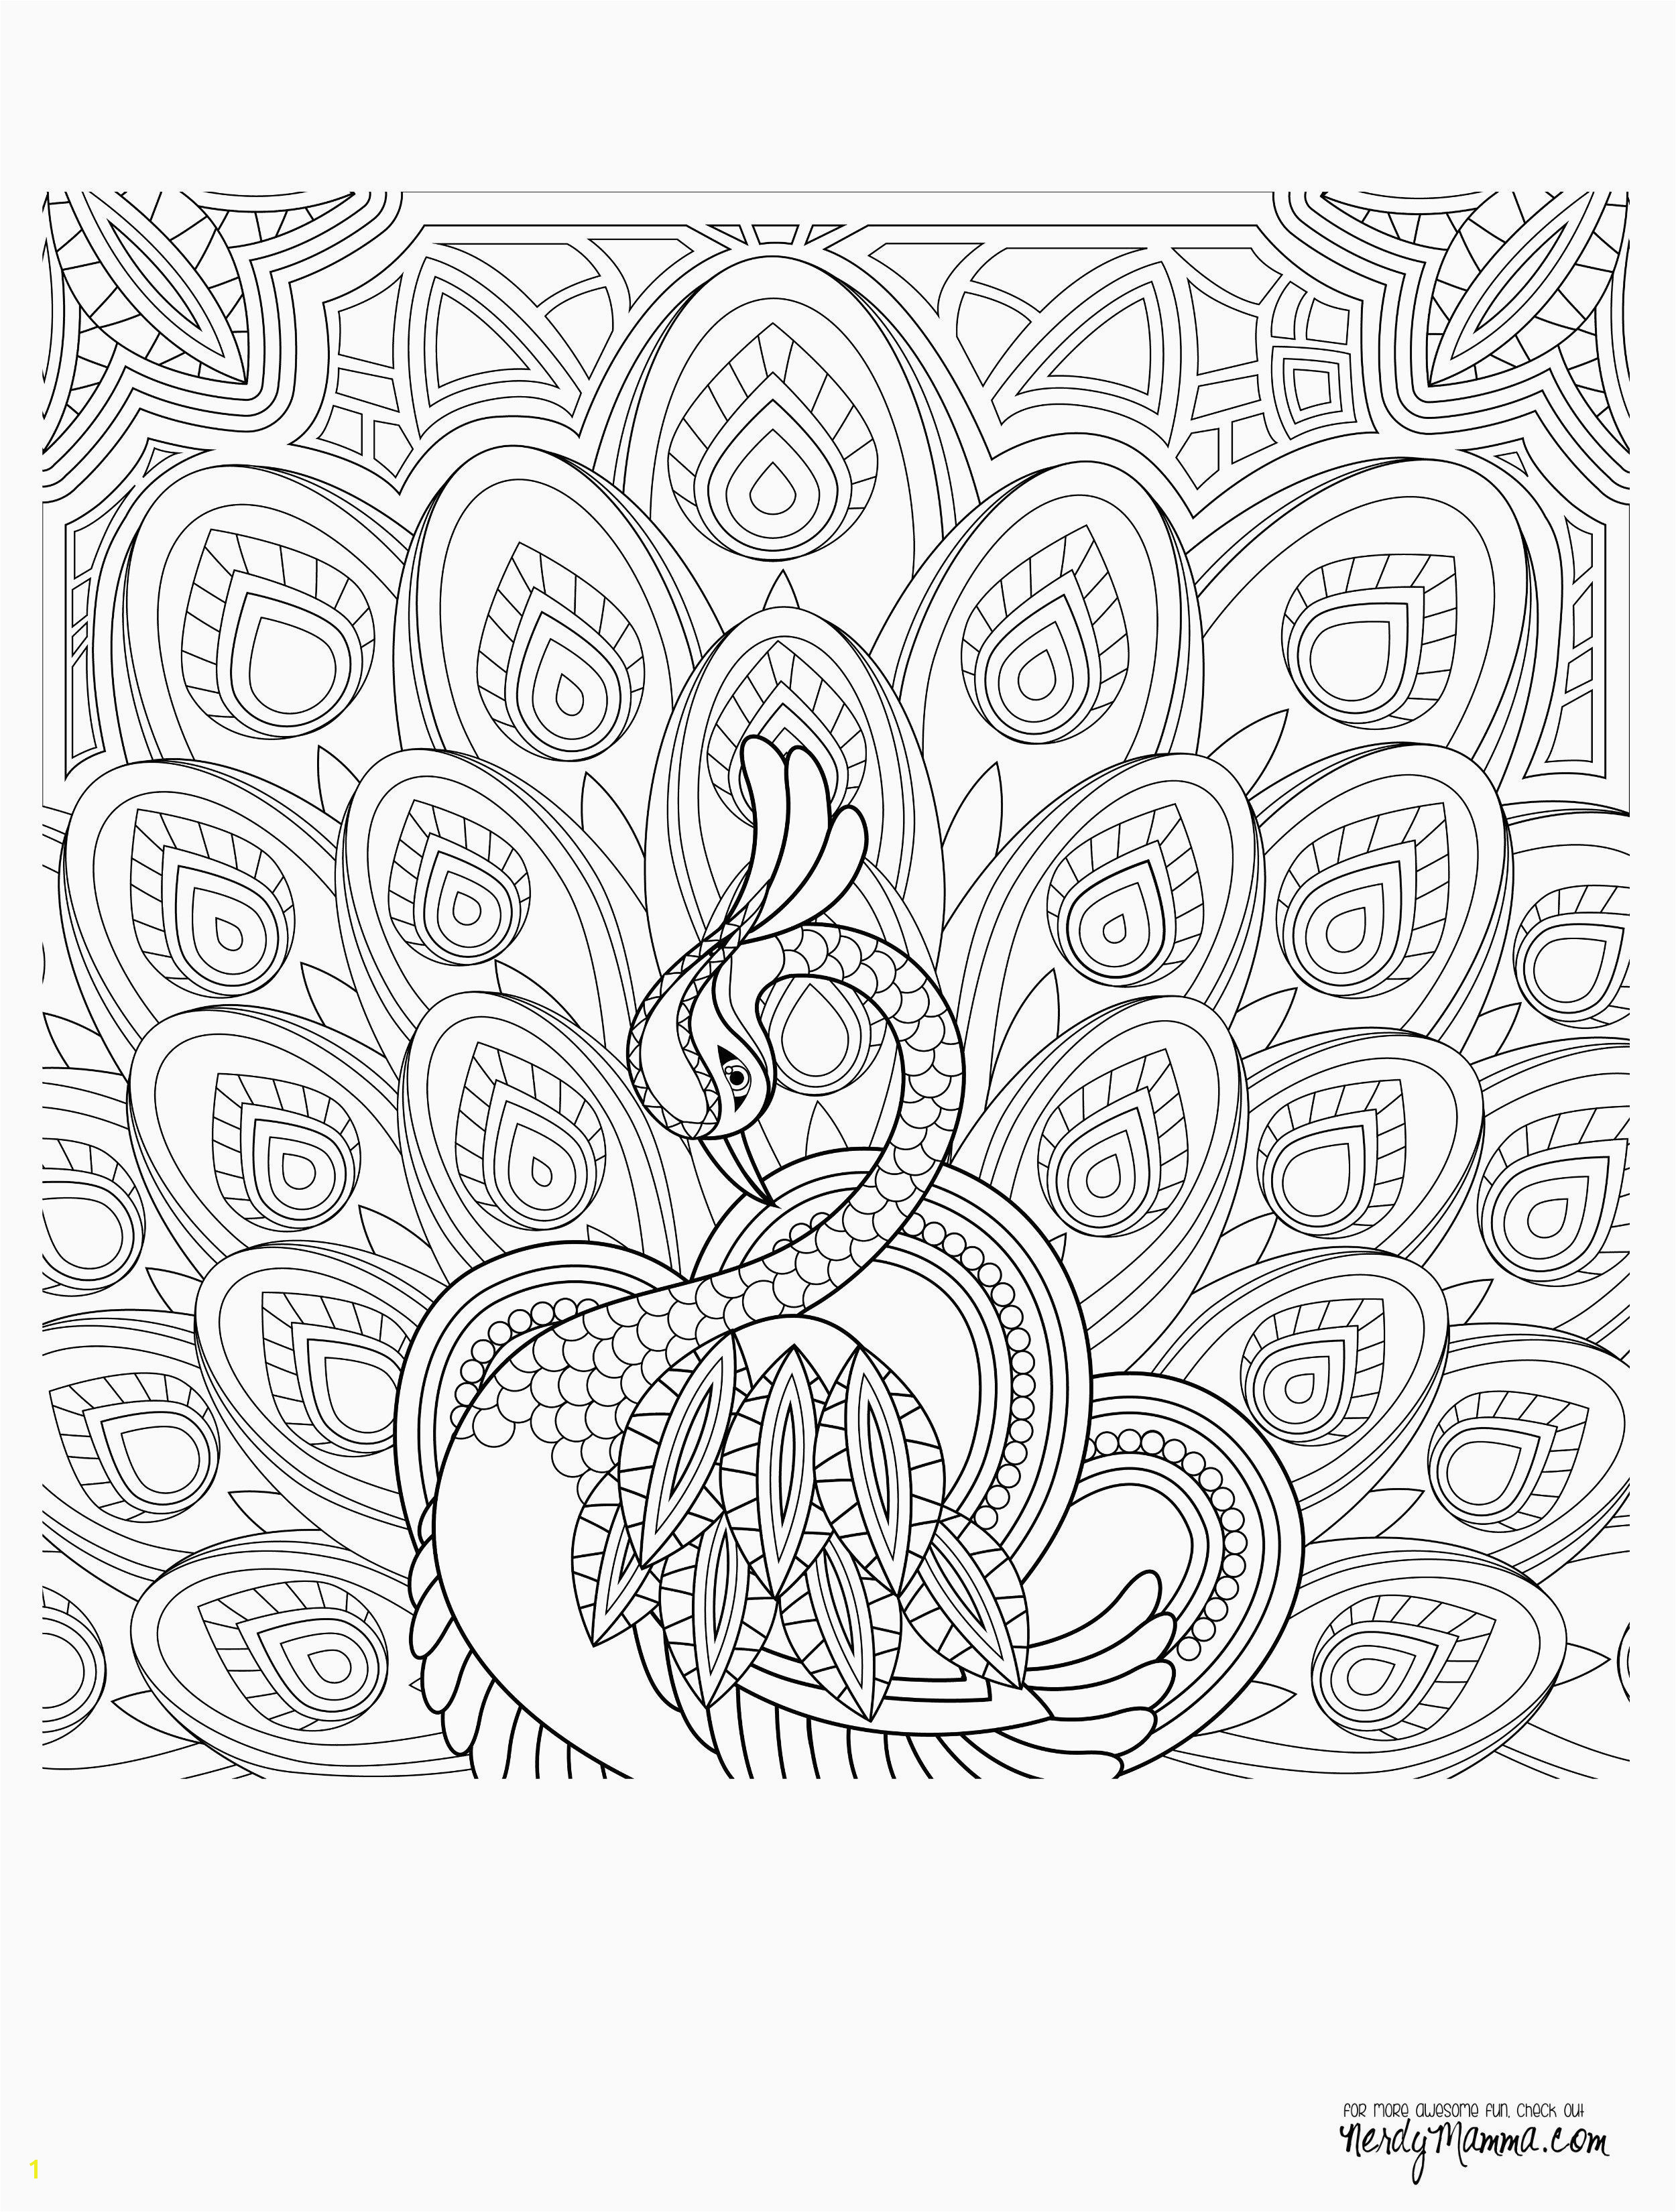 Printable Free Coloring Pages for Adults Free Printable Coloring Pages for Adults Best Awesome Coloring